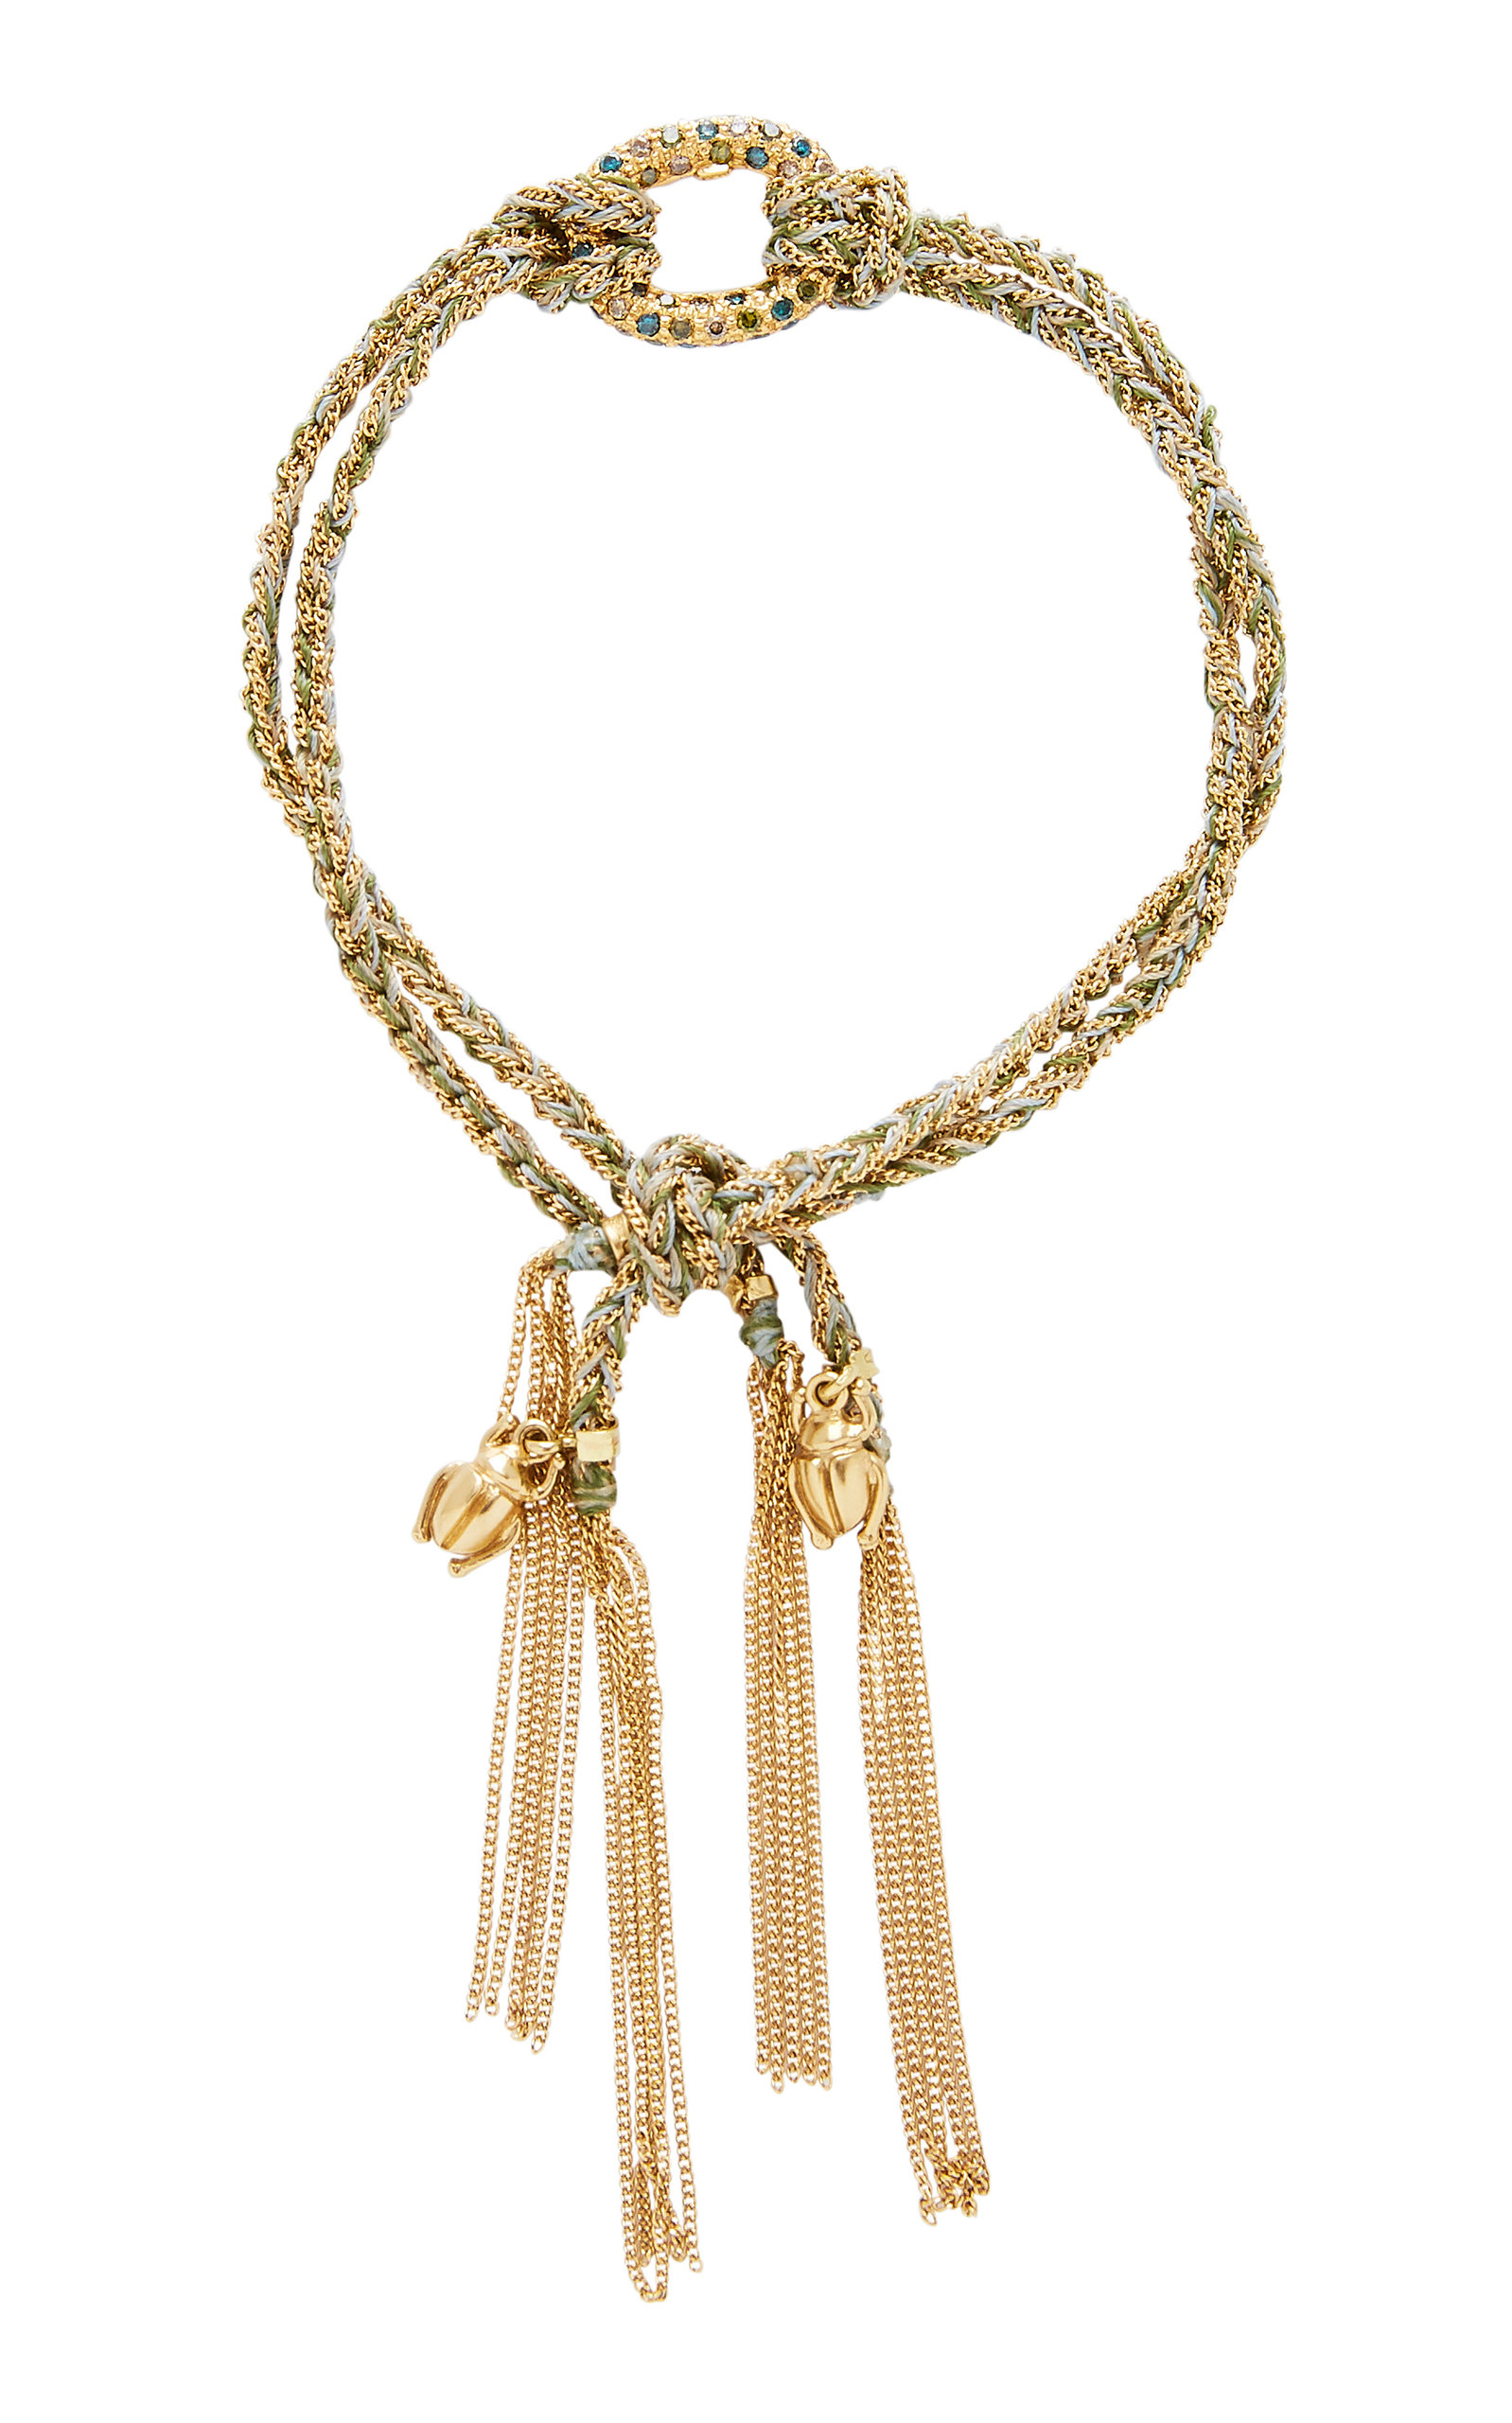 CAROLINA BUCCI LUCKY STRENGTH BRACELET WITH SACRAB CHARMS AND ONE PAVE LINK